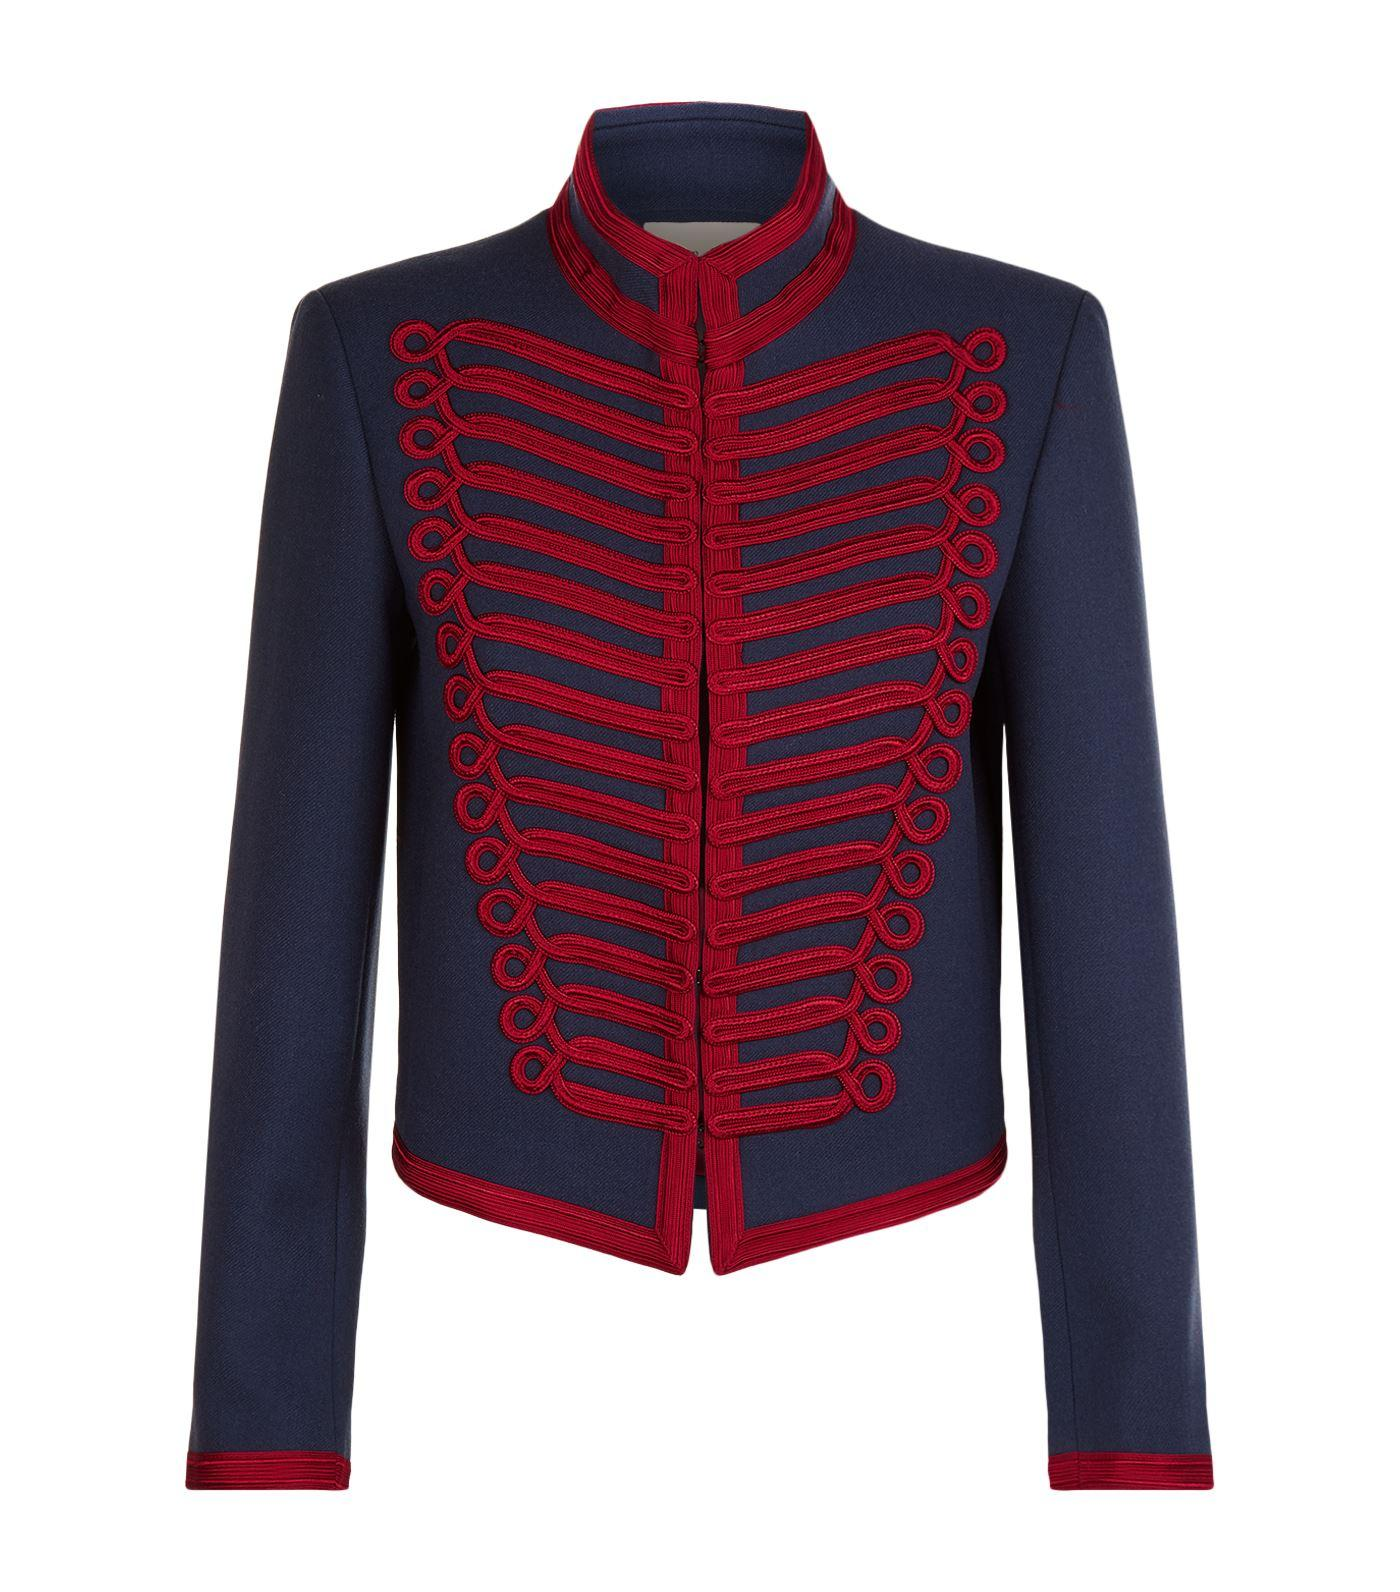 Sandro Embroidered Military Jacket In Cobalt